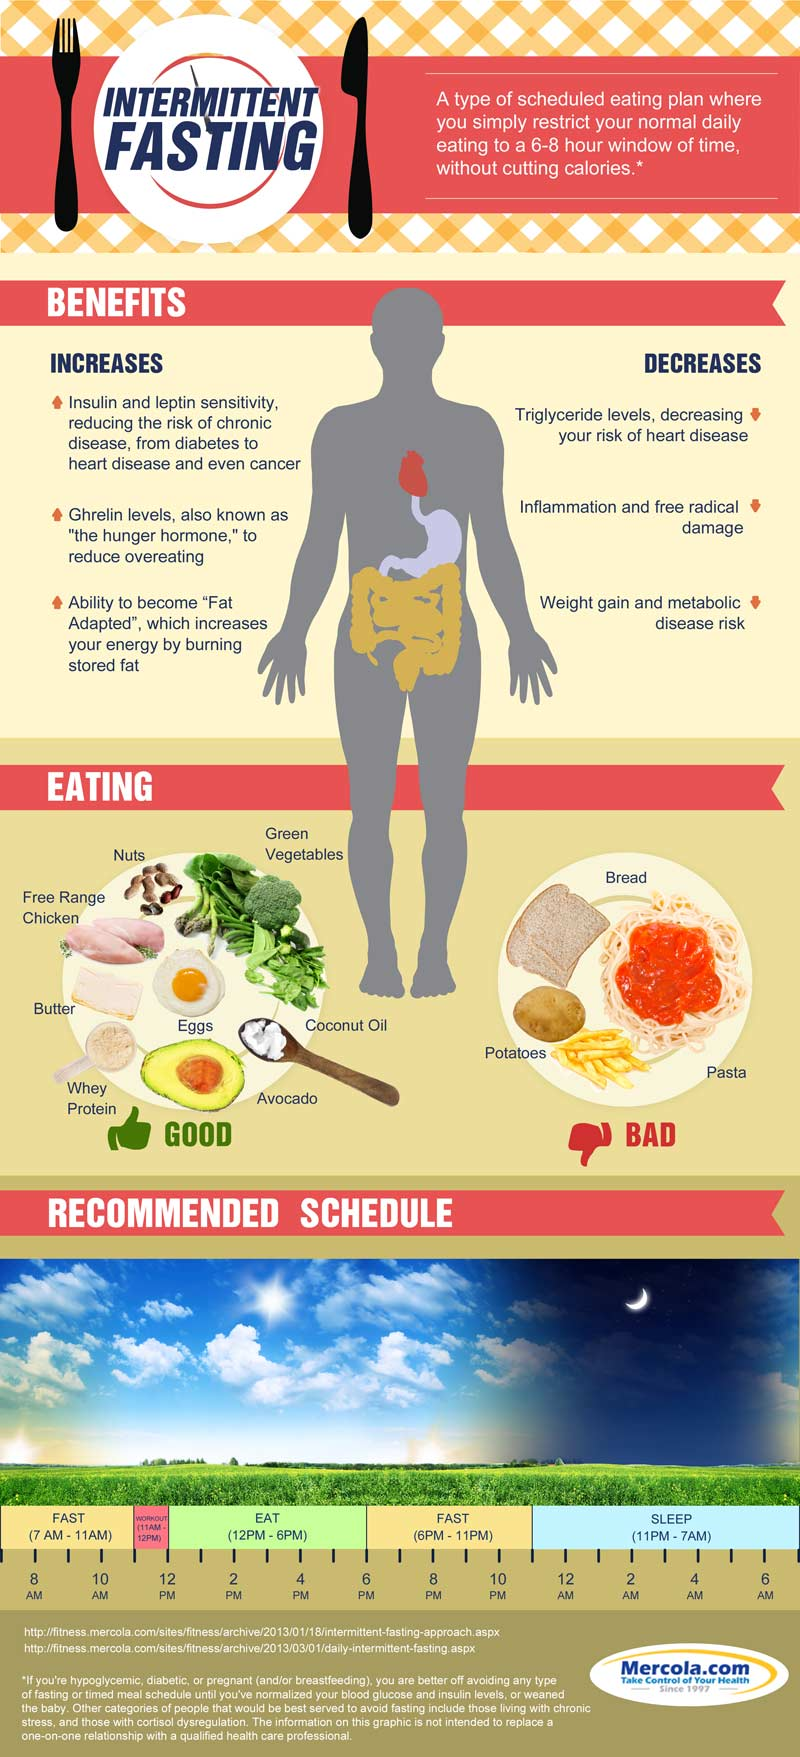 Intermittent Fasting for Health - Dr. Betsy Rice, ND